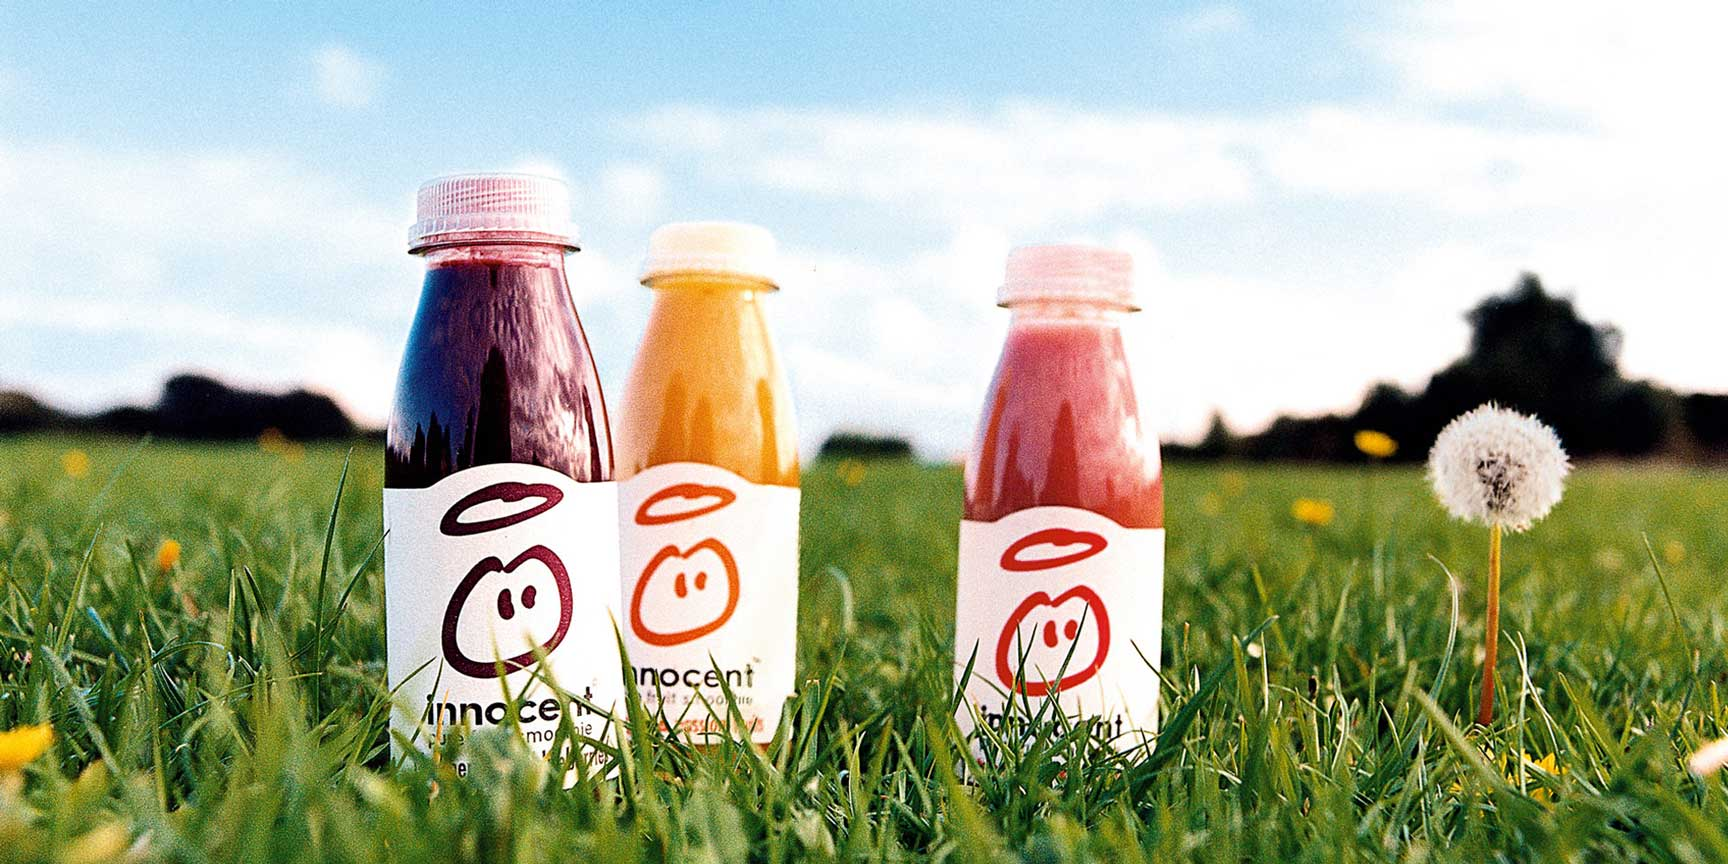 innocent drinks creating a brand